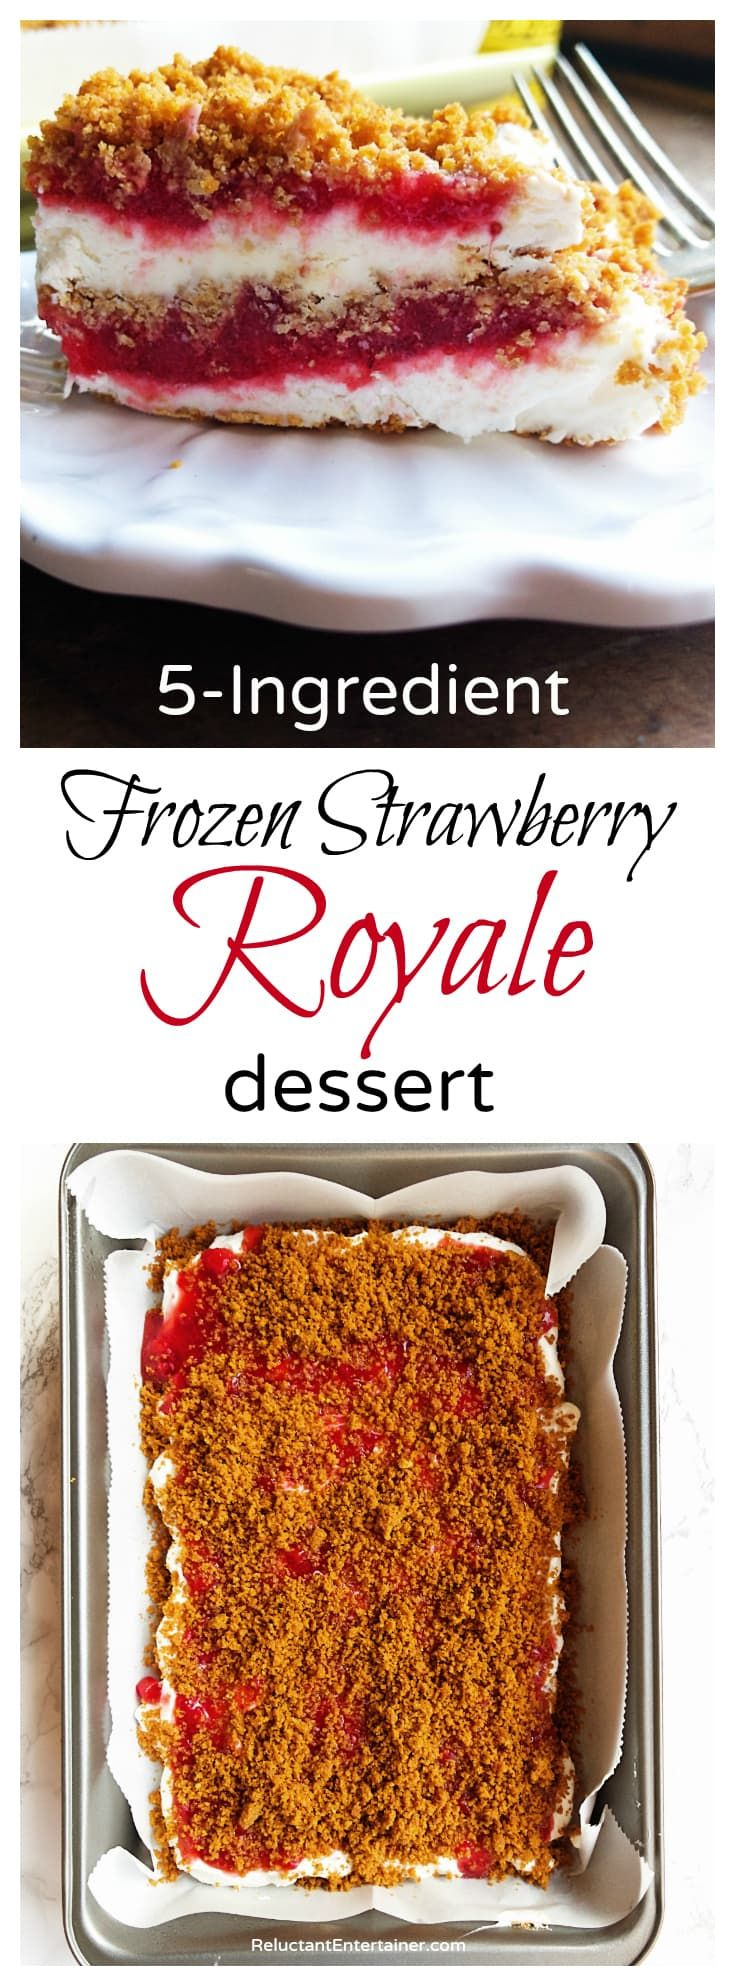 5-Ingredient Frozen Strawberry Royale Dessert